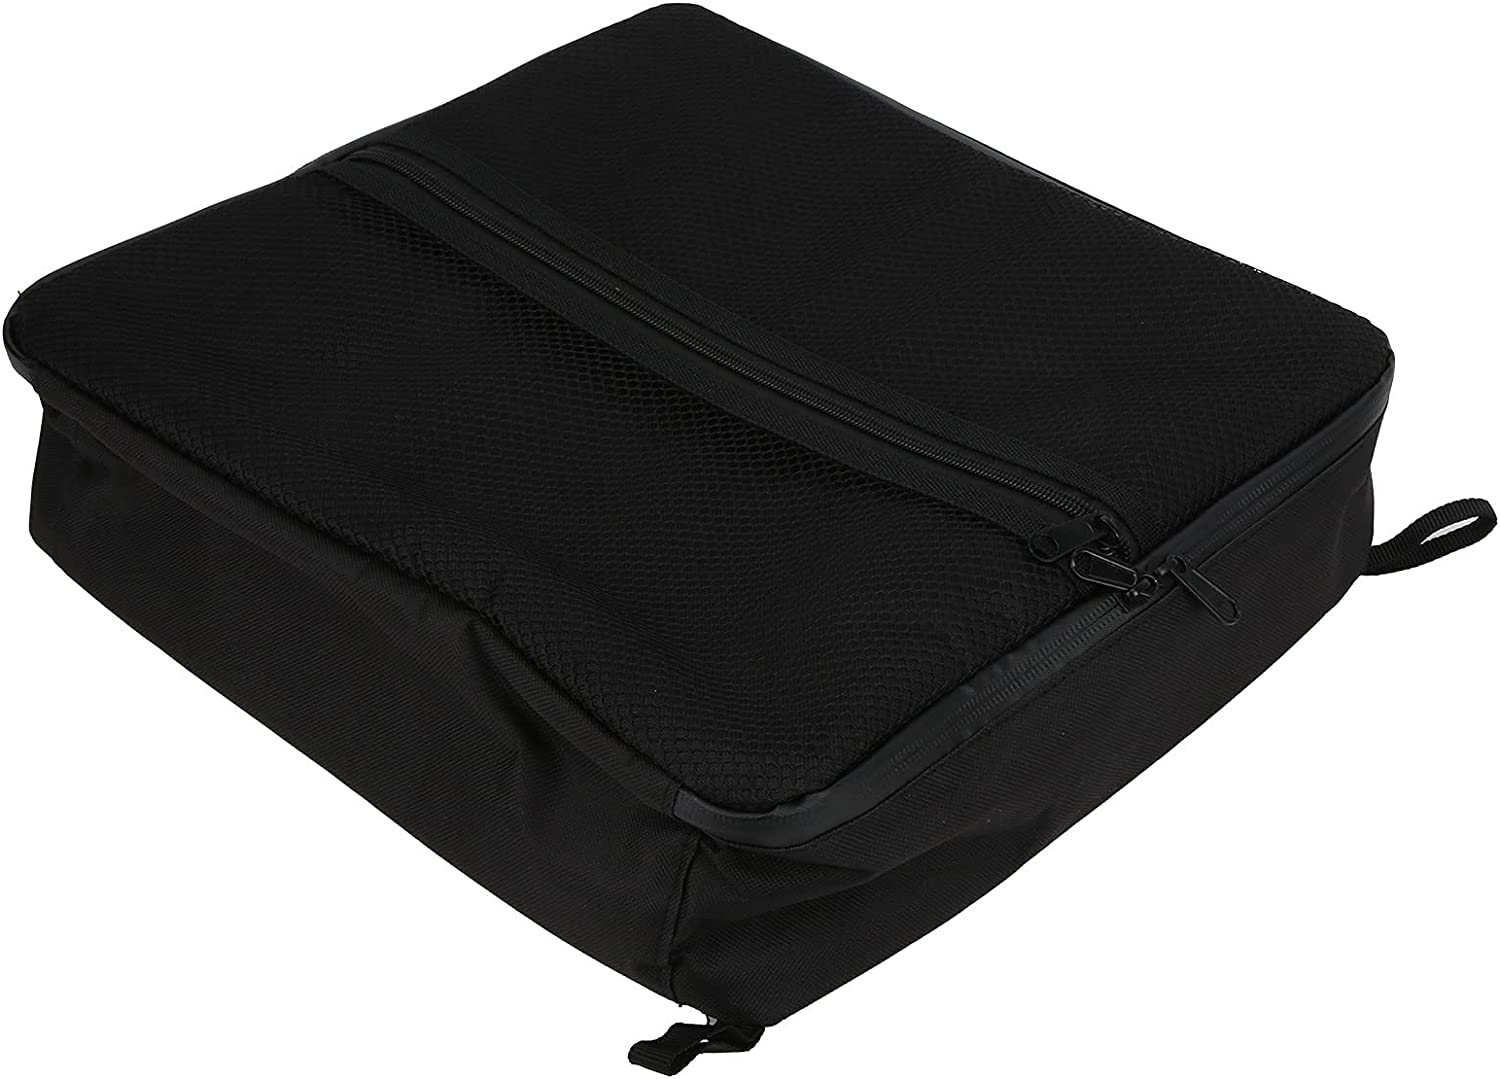 01 Max 78% OFF Paddleboard Mesh Bag Deck Outside Deluxe Black